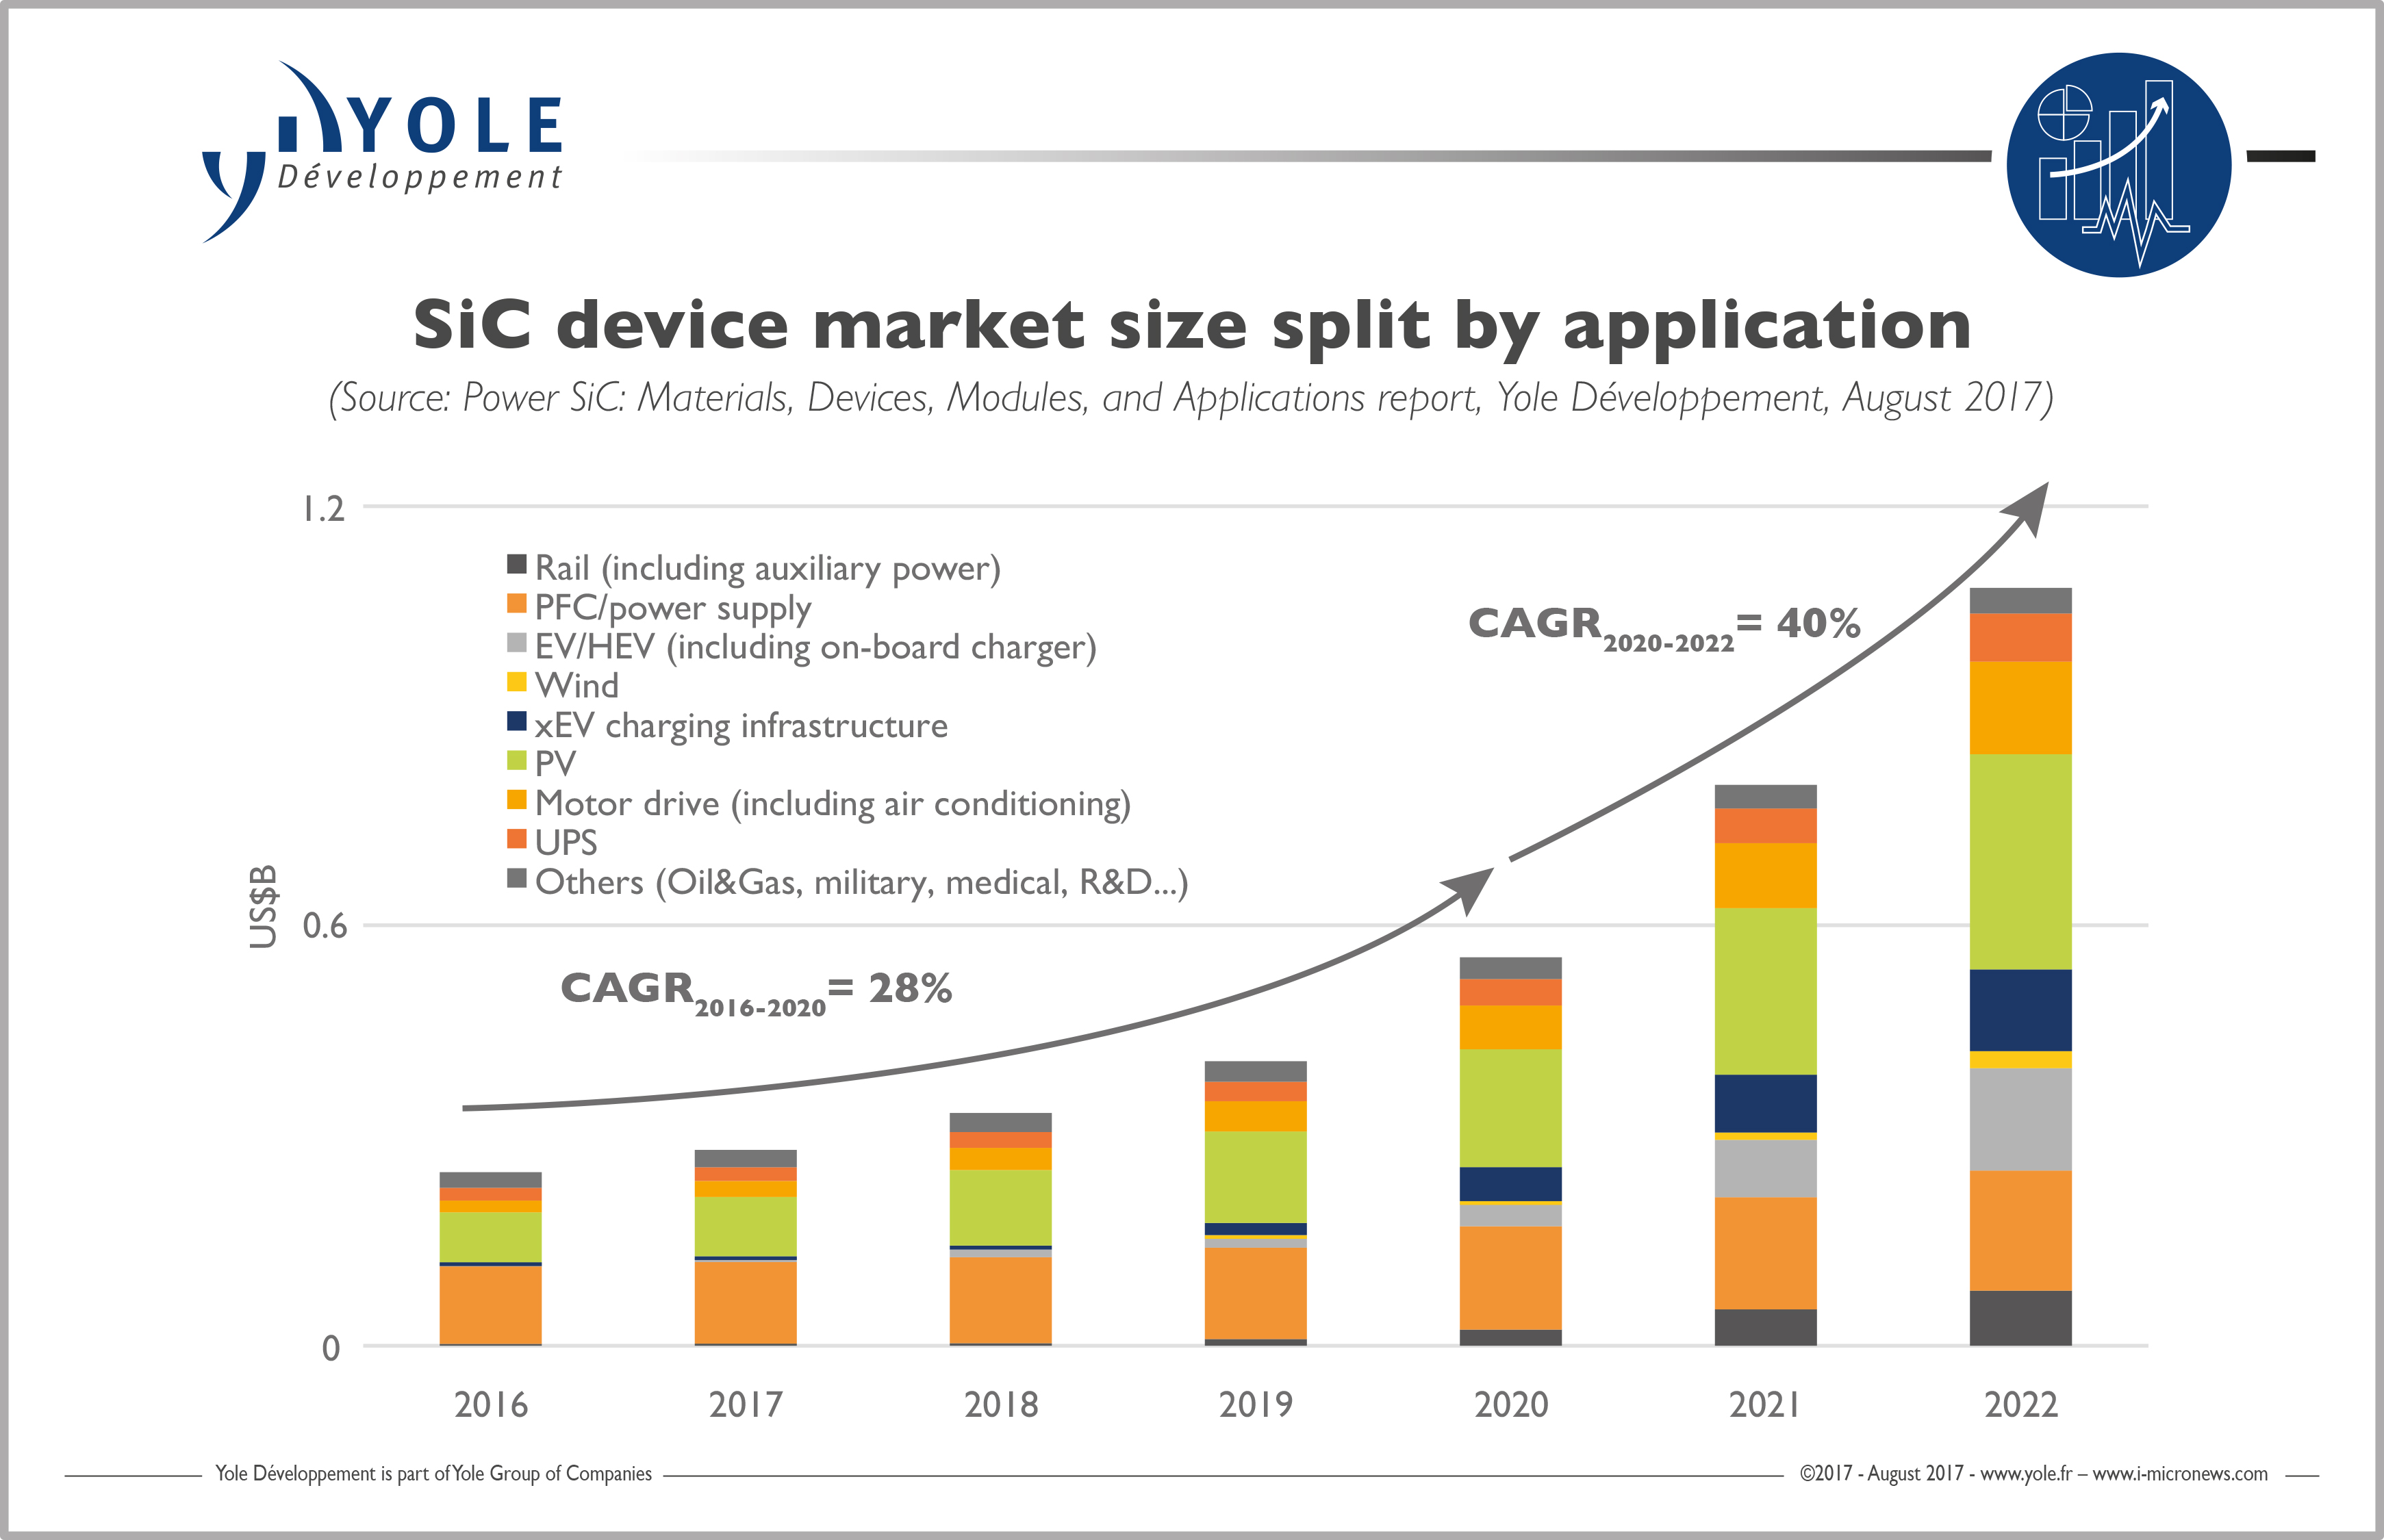 SiC technologies expected to keep increasing in 2017